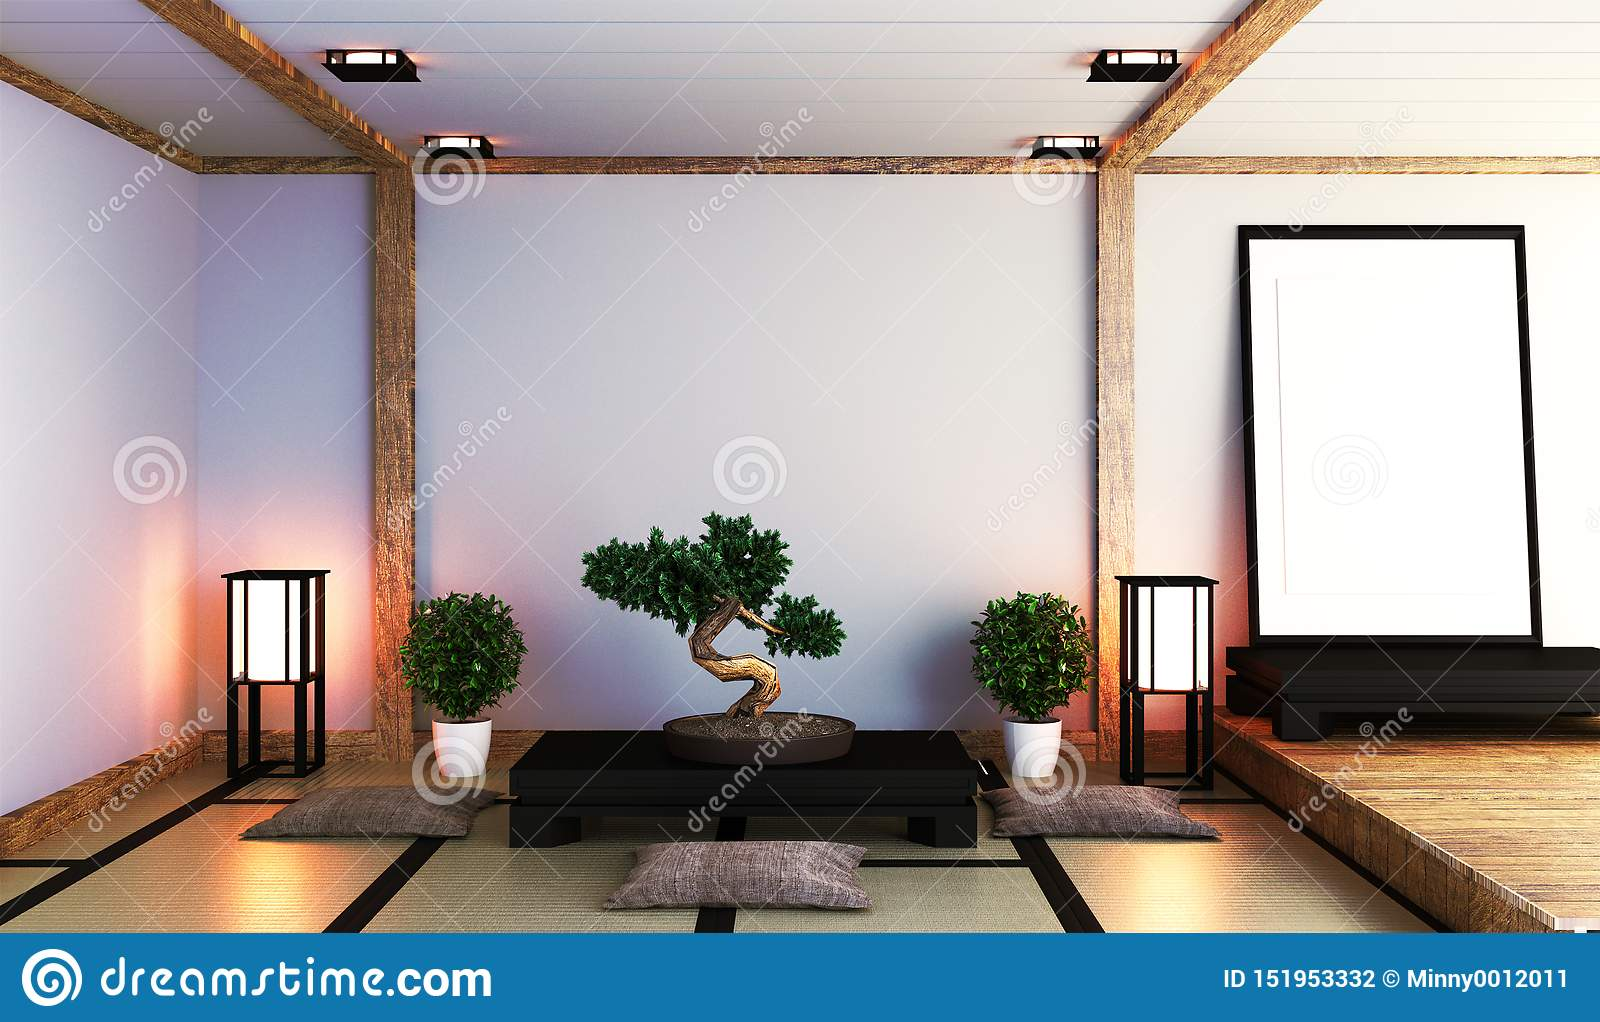 Japanese Living Room With Lamp, Frame, Black Low Table And ...